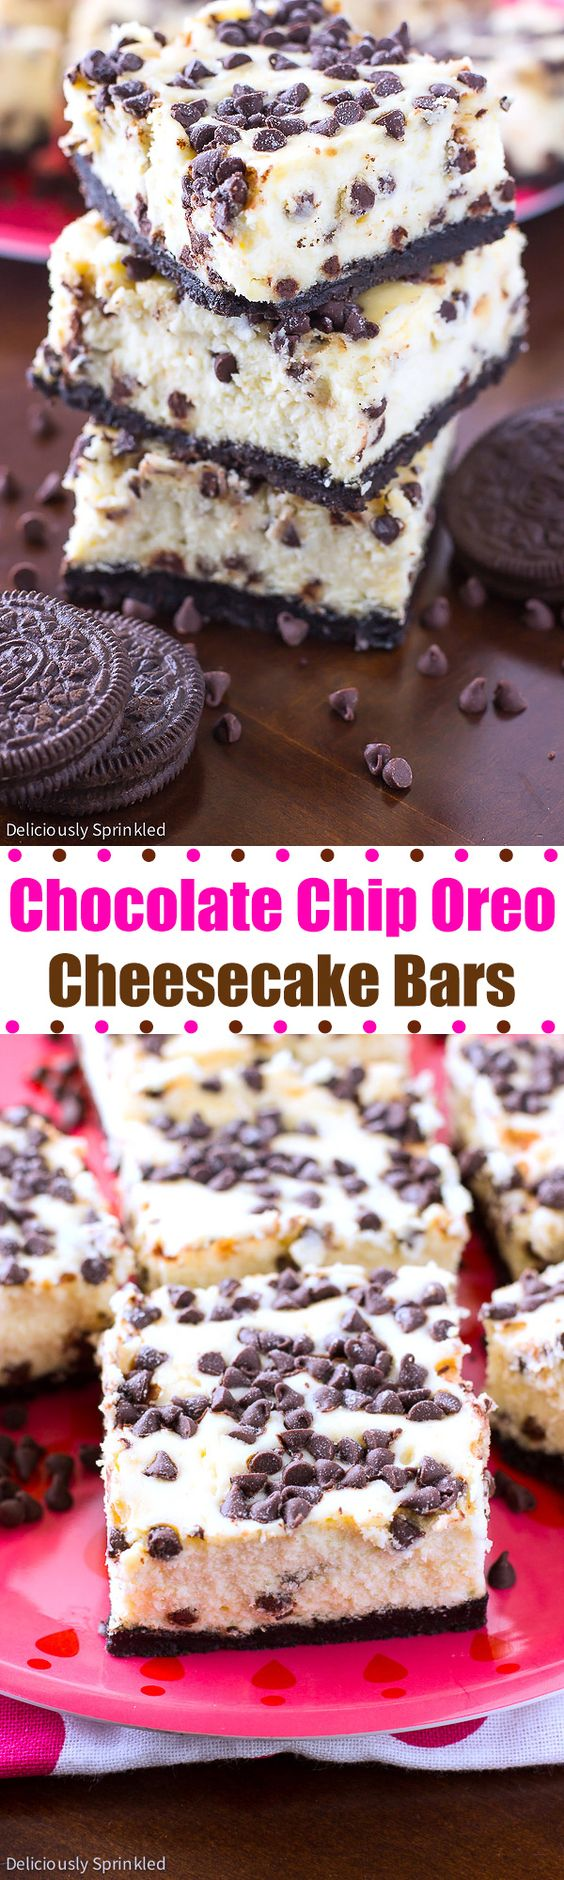 Chocolate Chip Oreo Cheesecake Bars- an easy dessert to make that everyone will love!: